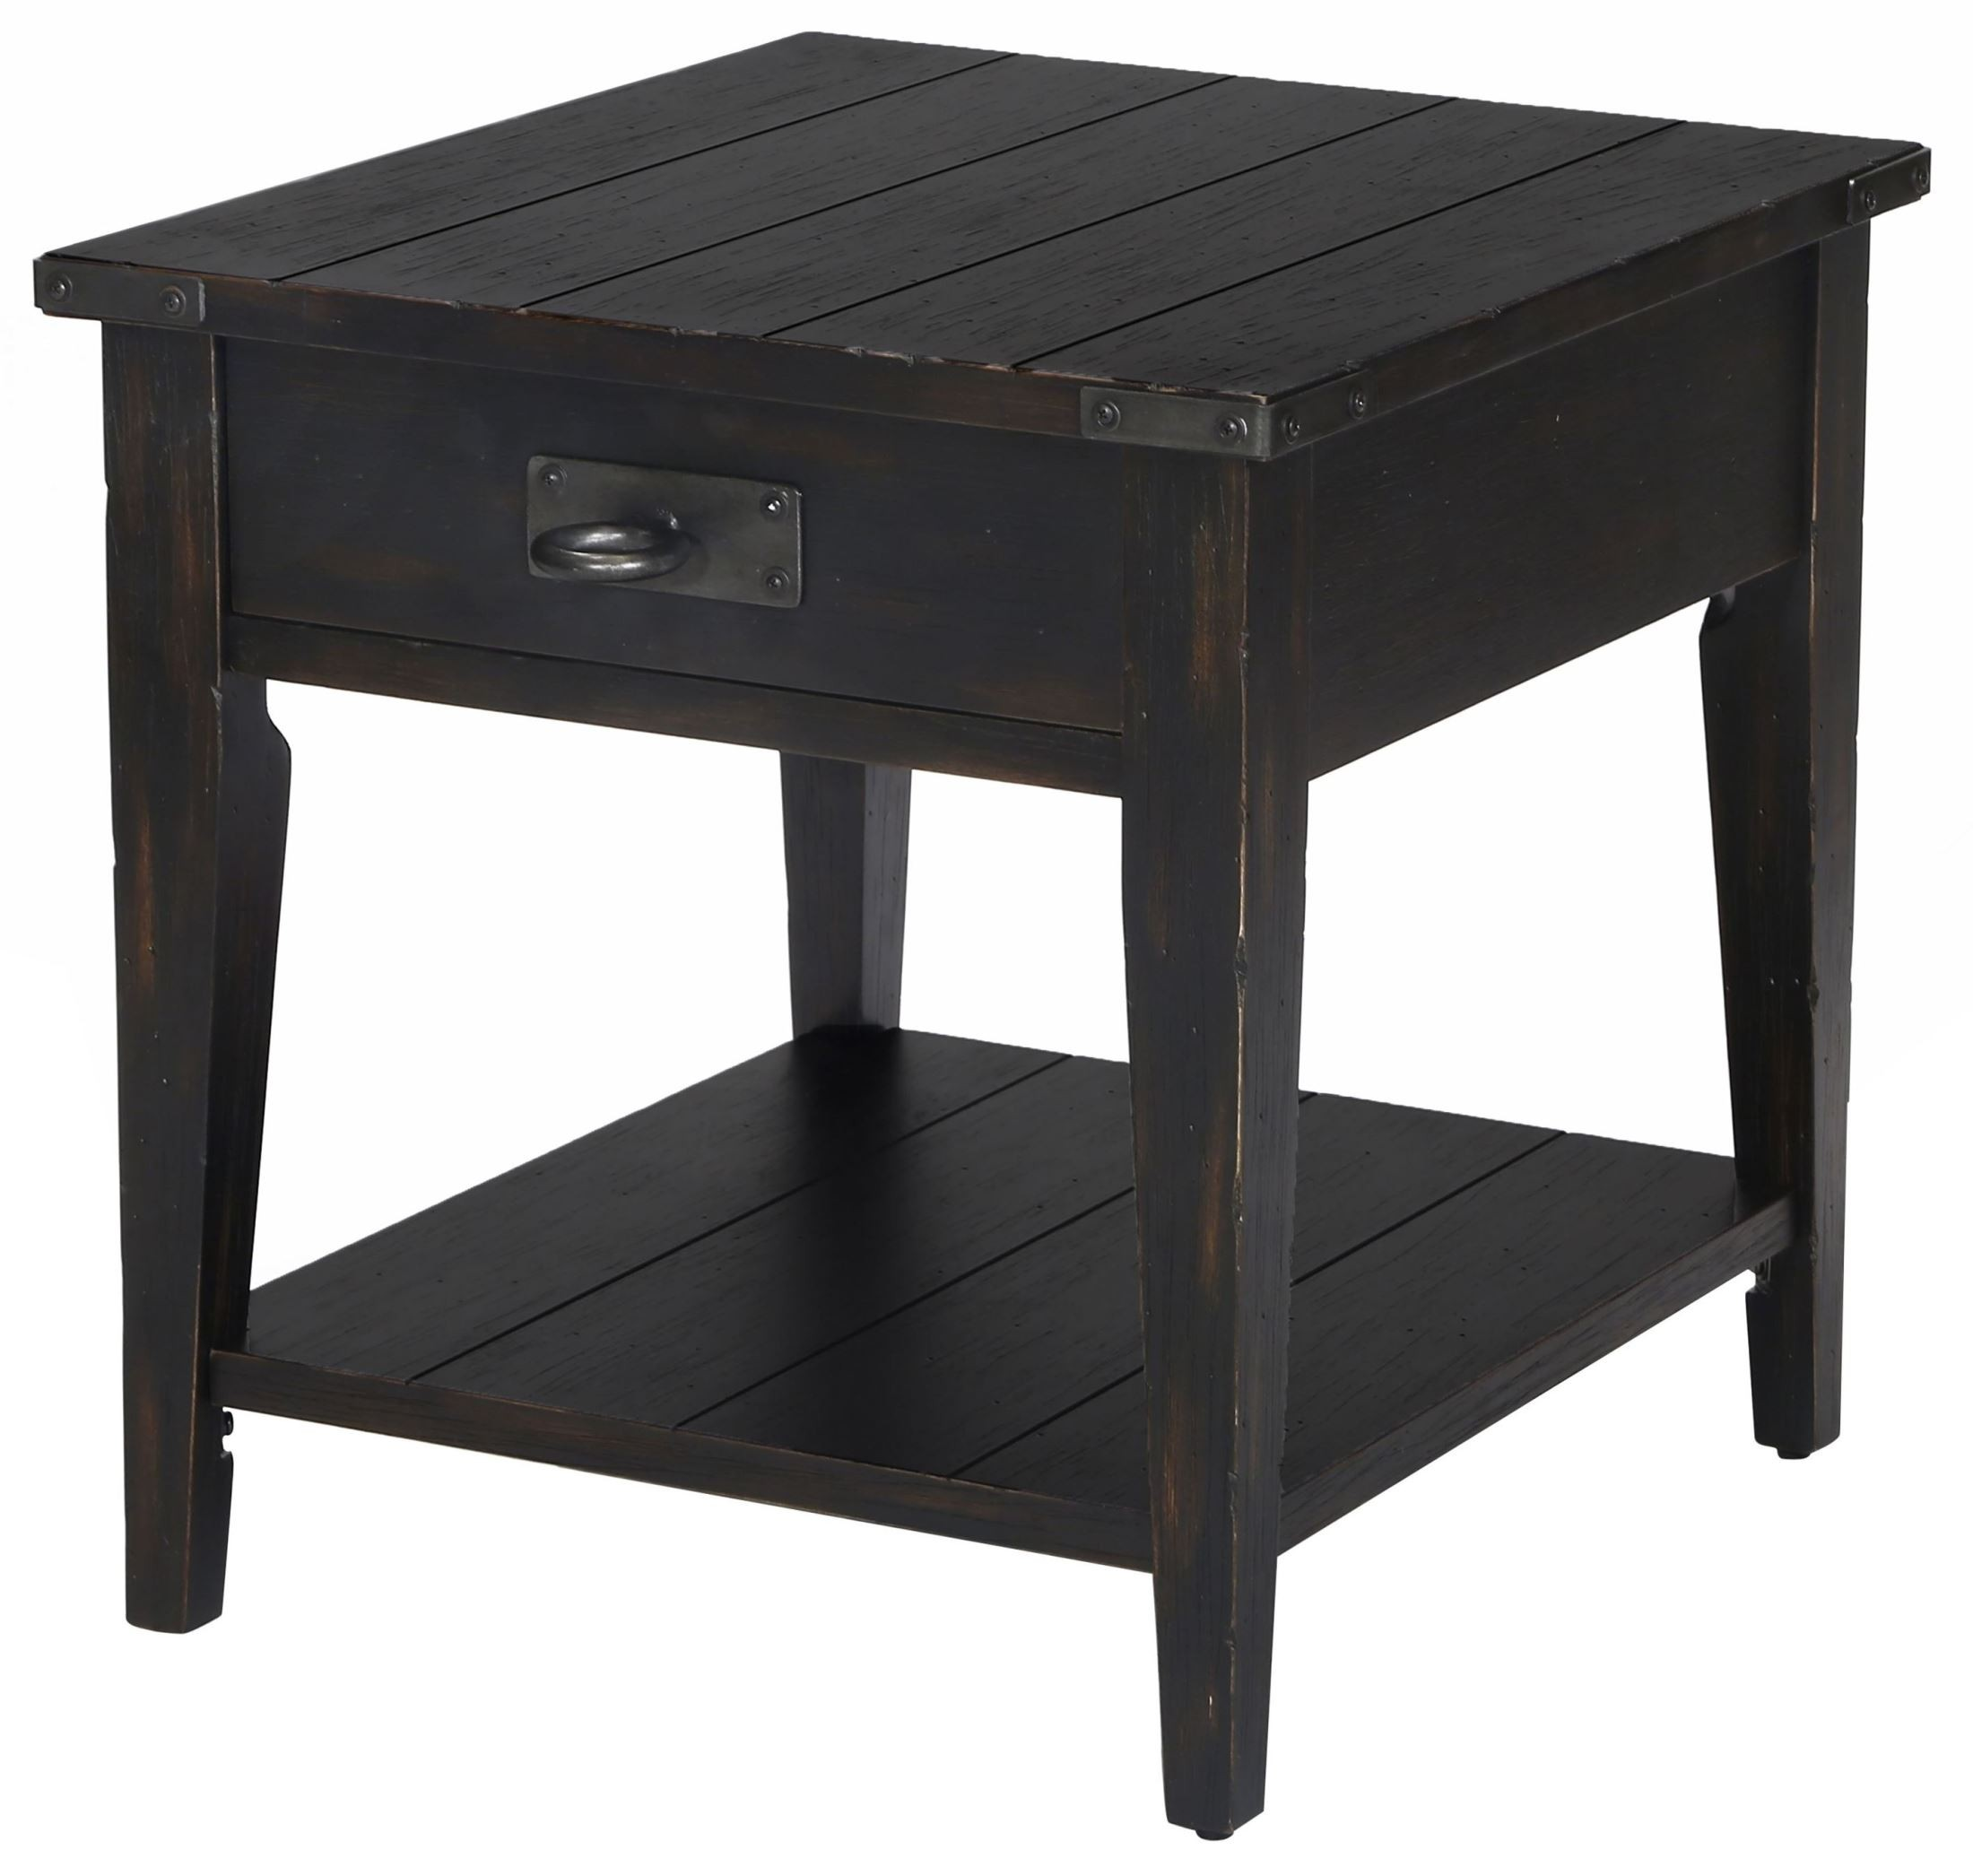 Black Coffee Table Sheffield: Sheffield Antique Black Rectangular End Table From